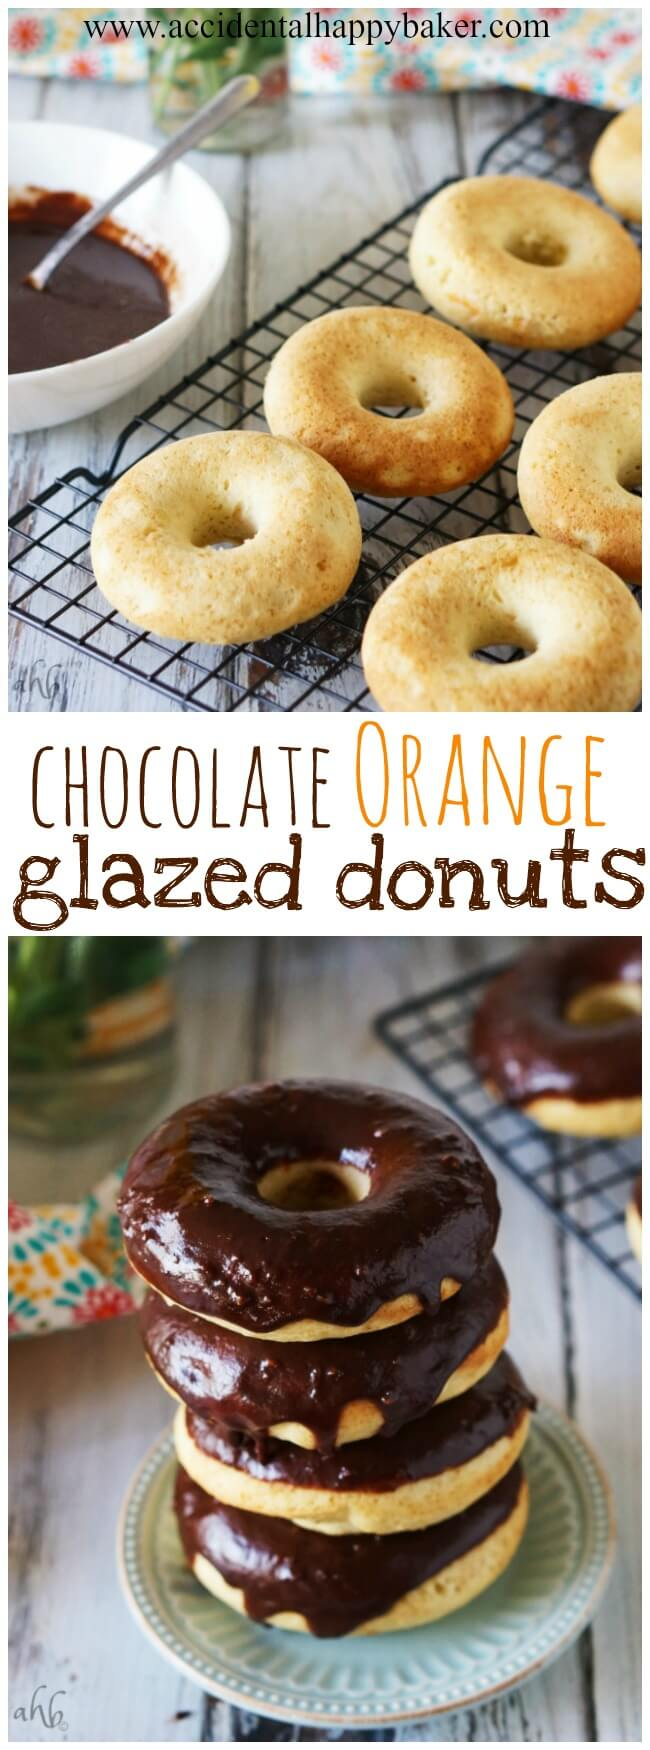 Chocolate Glazed Orange Donuts